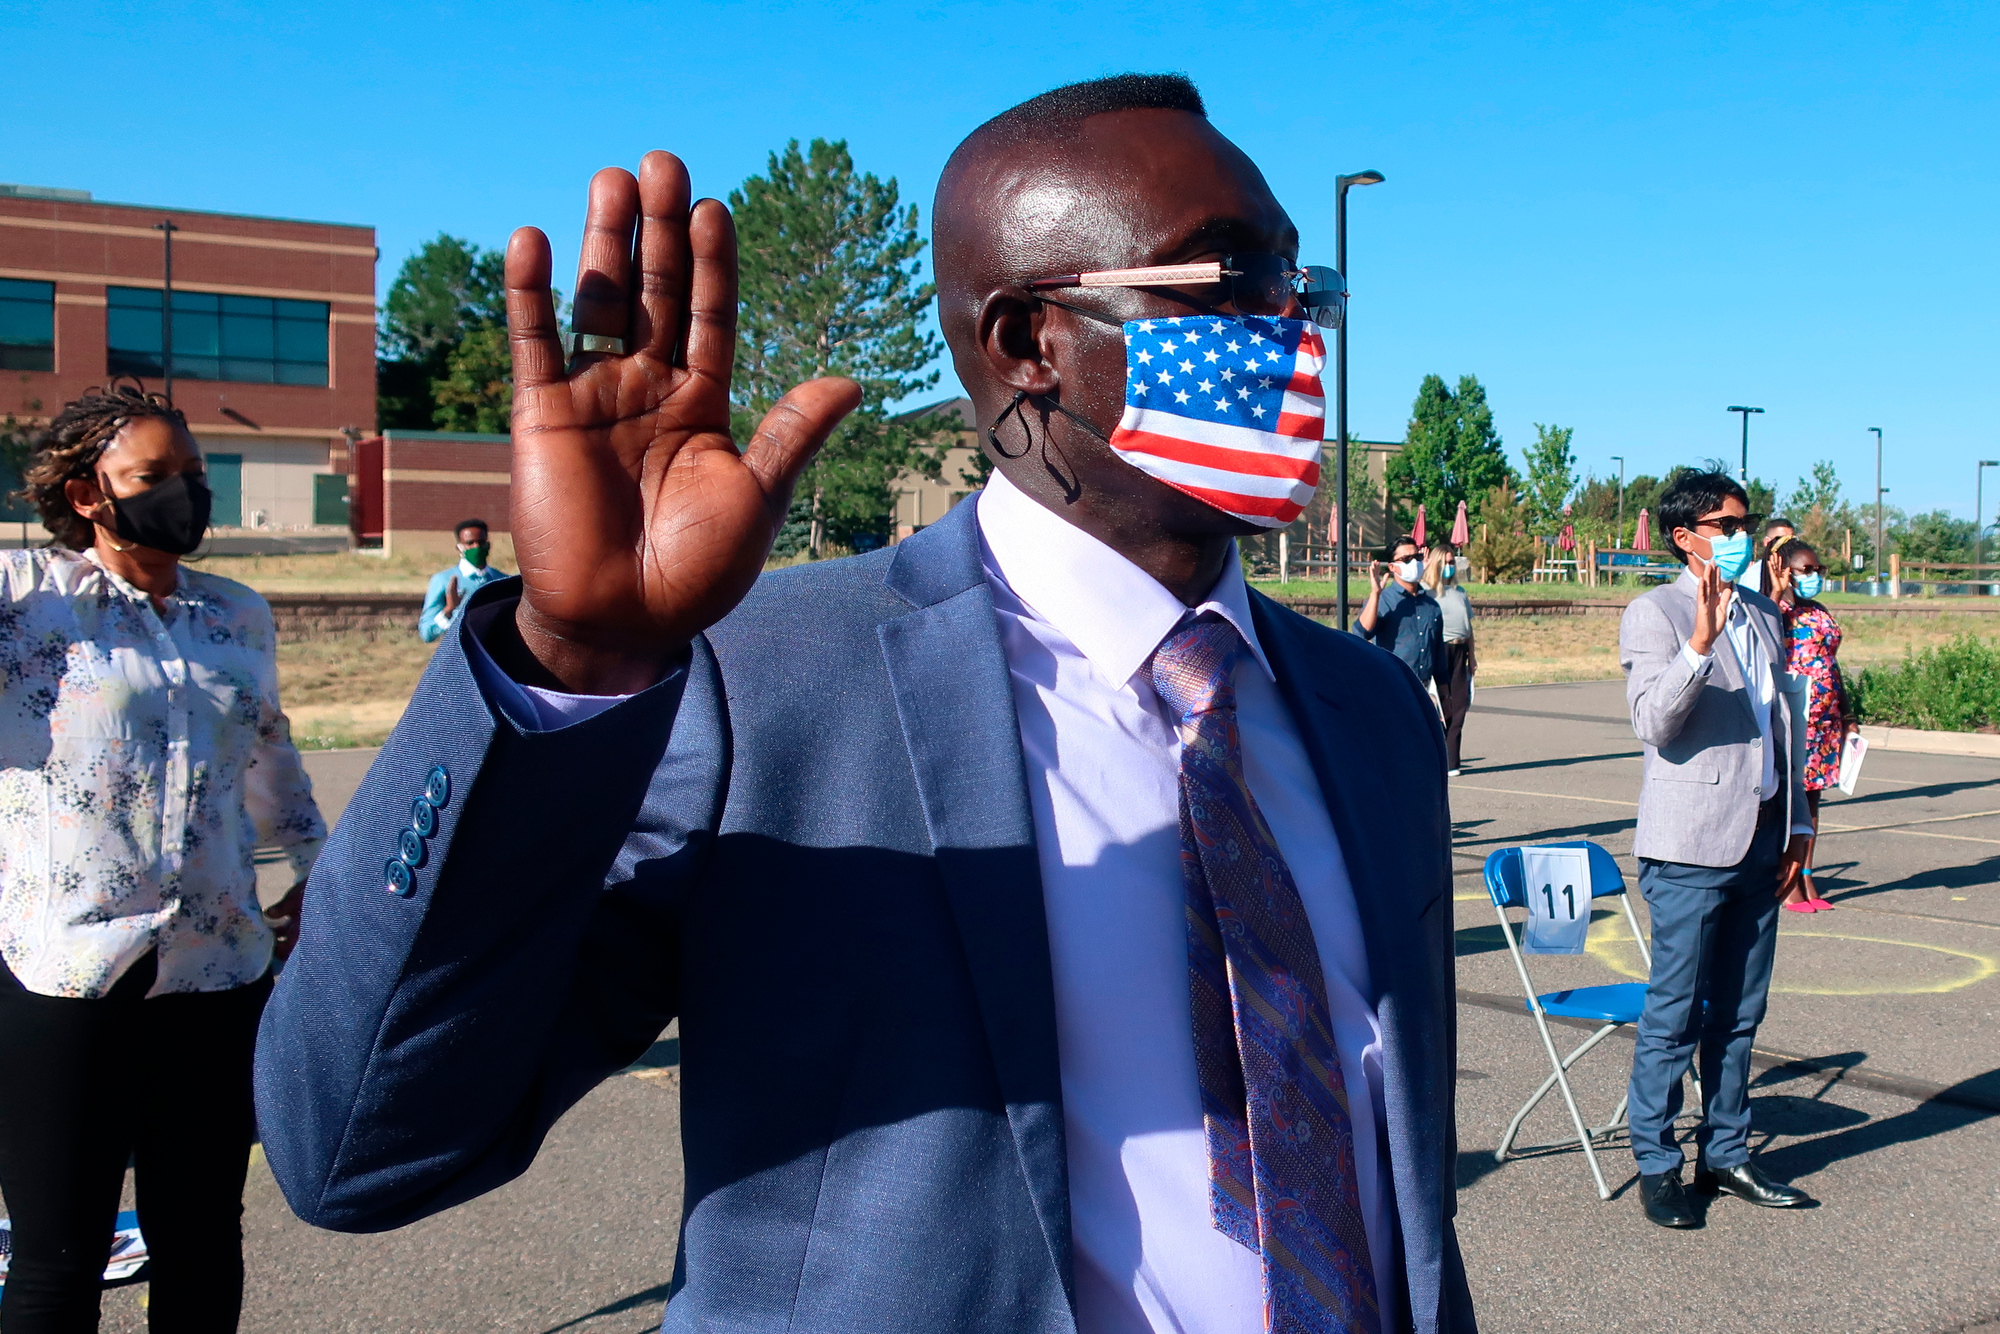 Candidate for naturalization Jeremy Owusu takes his oath to become a U.S. citizen in front of the Denver USCIS field office on Friday, July 17, 2020. He and 33 others became citizens in a ceremony unique to the COVID-19 pandemic.